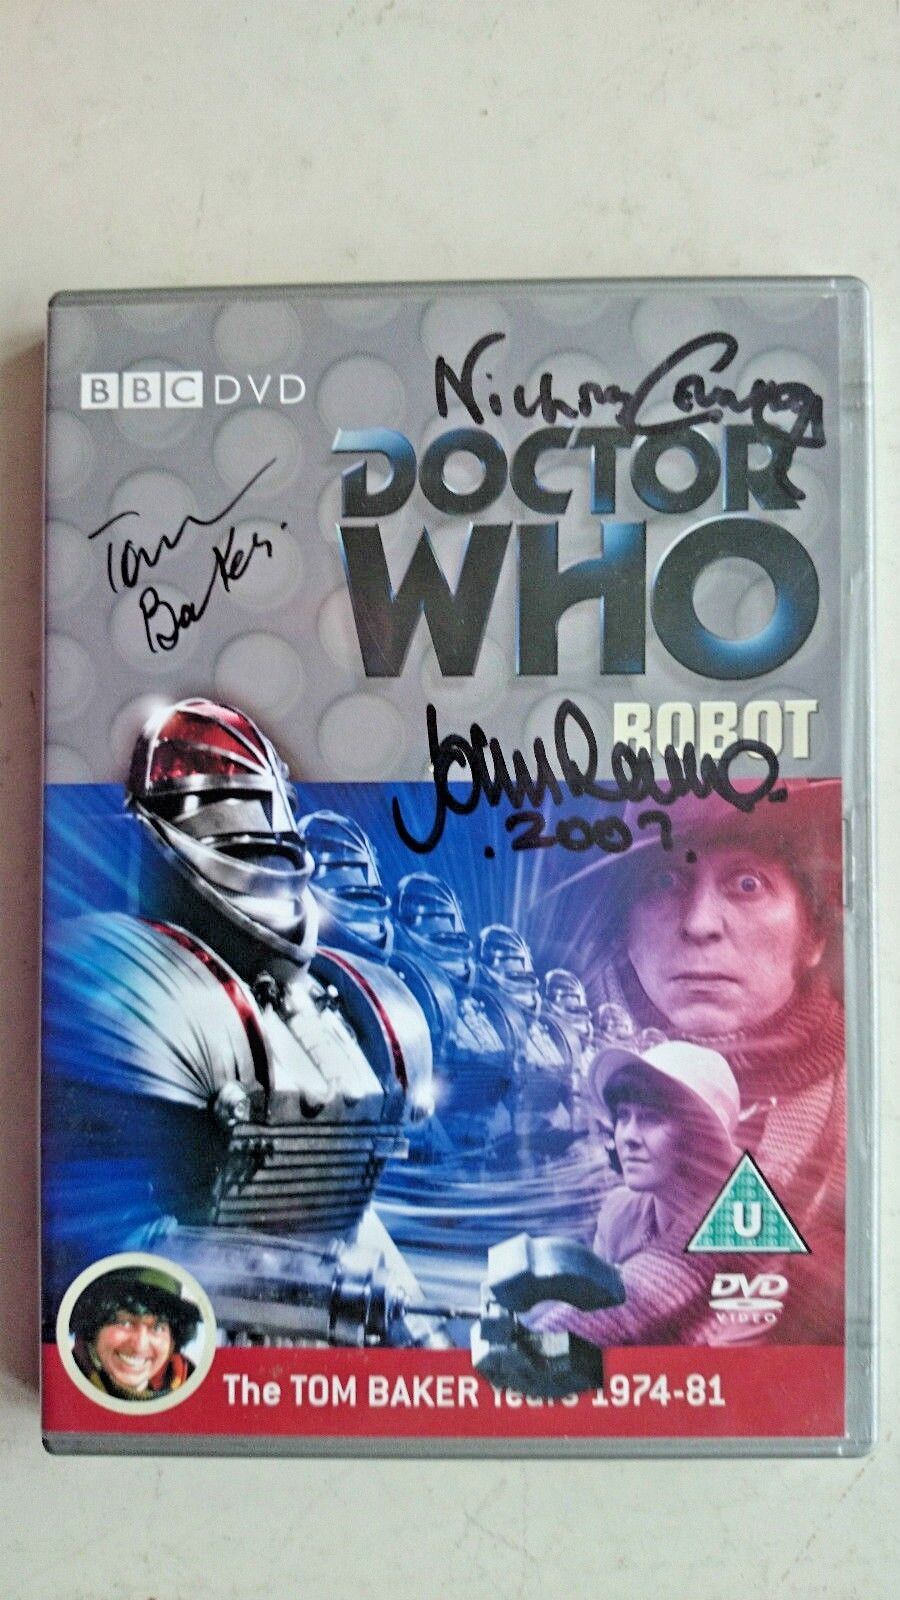 Doctor Who Robot (DVD 2007) - Tom Baker, 3 x Autographed Inlay